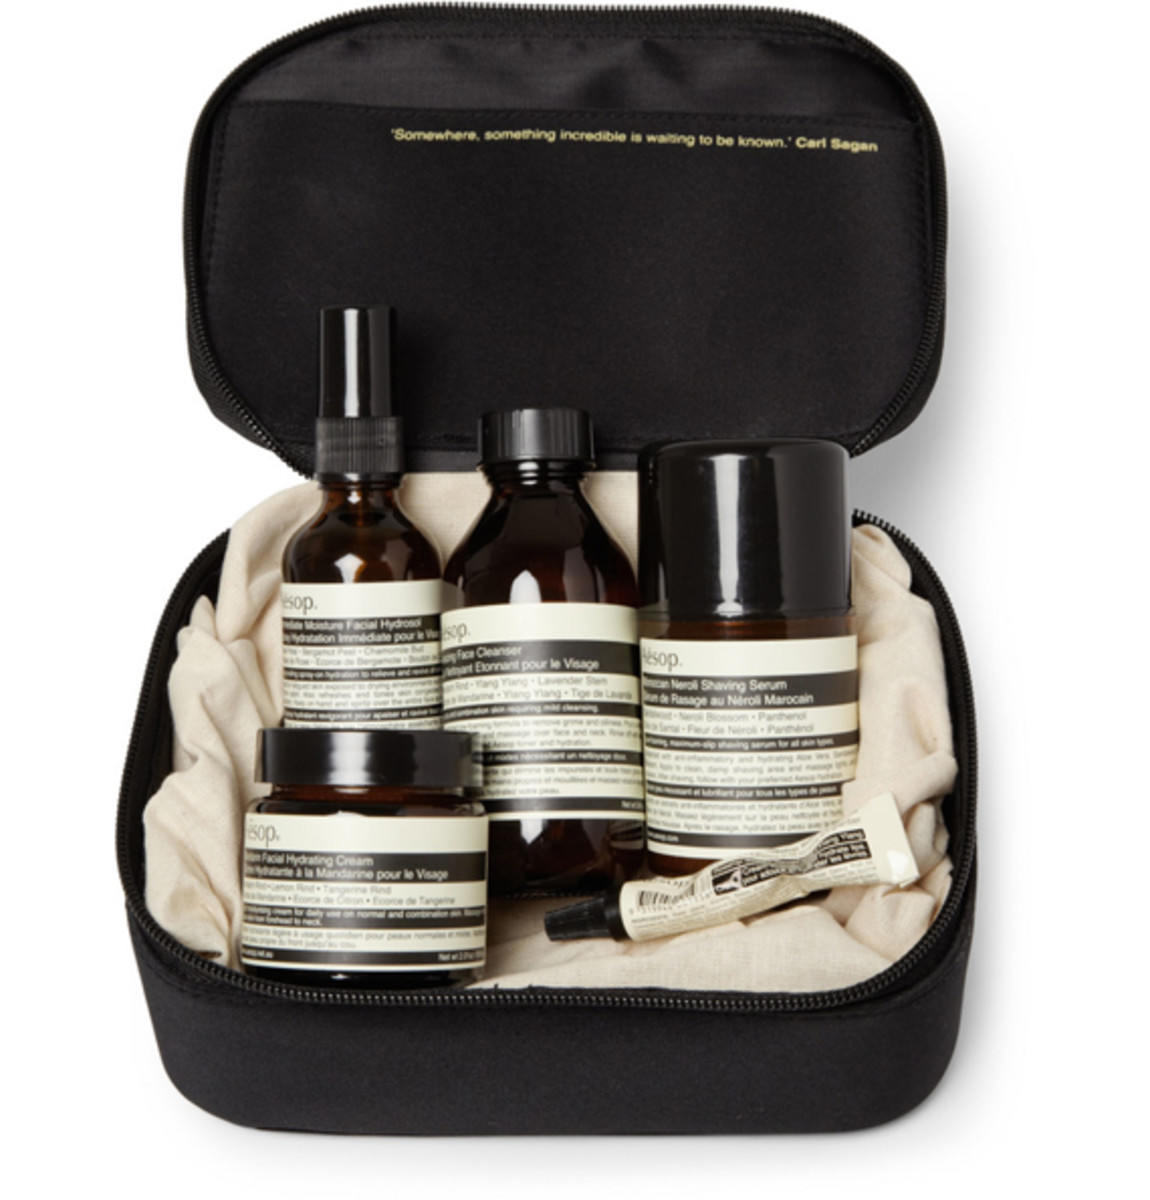 mr-porter-aesop-dapper-gentleman-grooming-kit-02